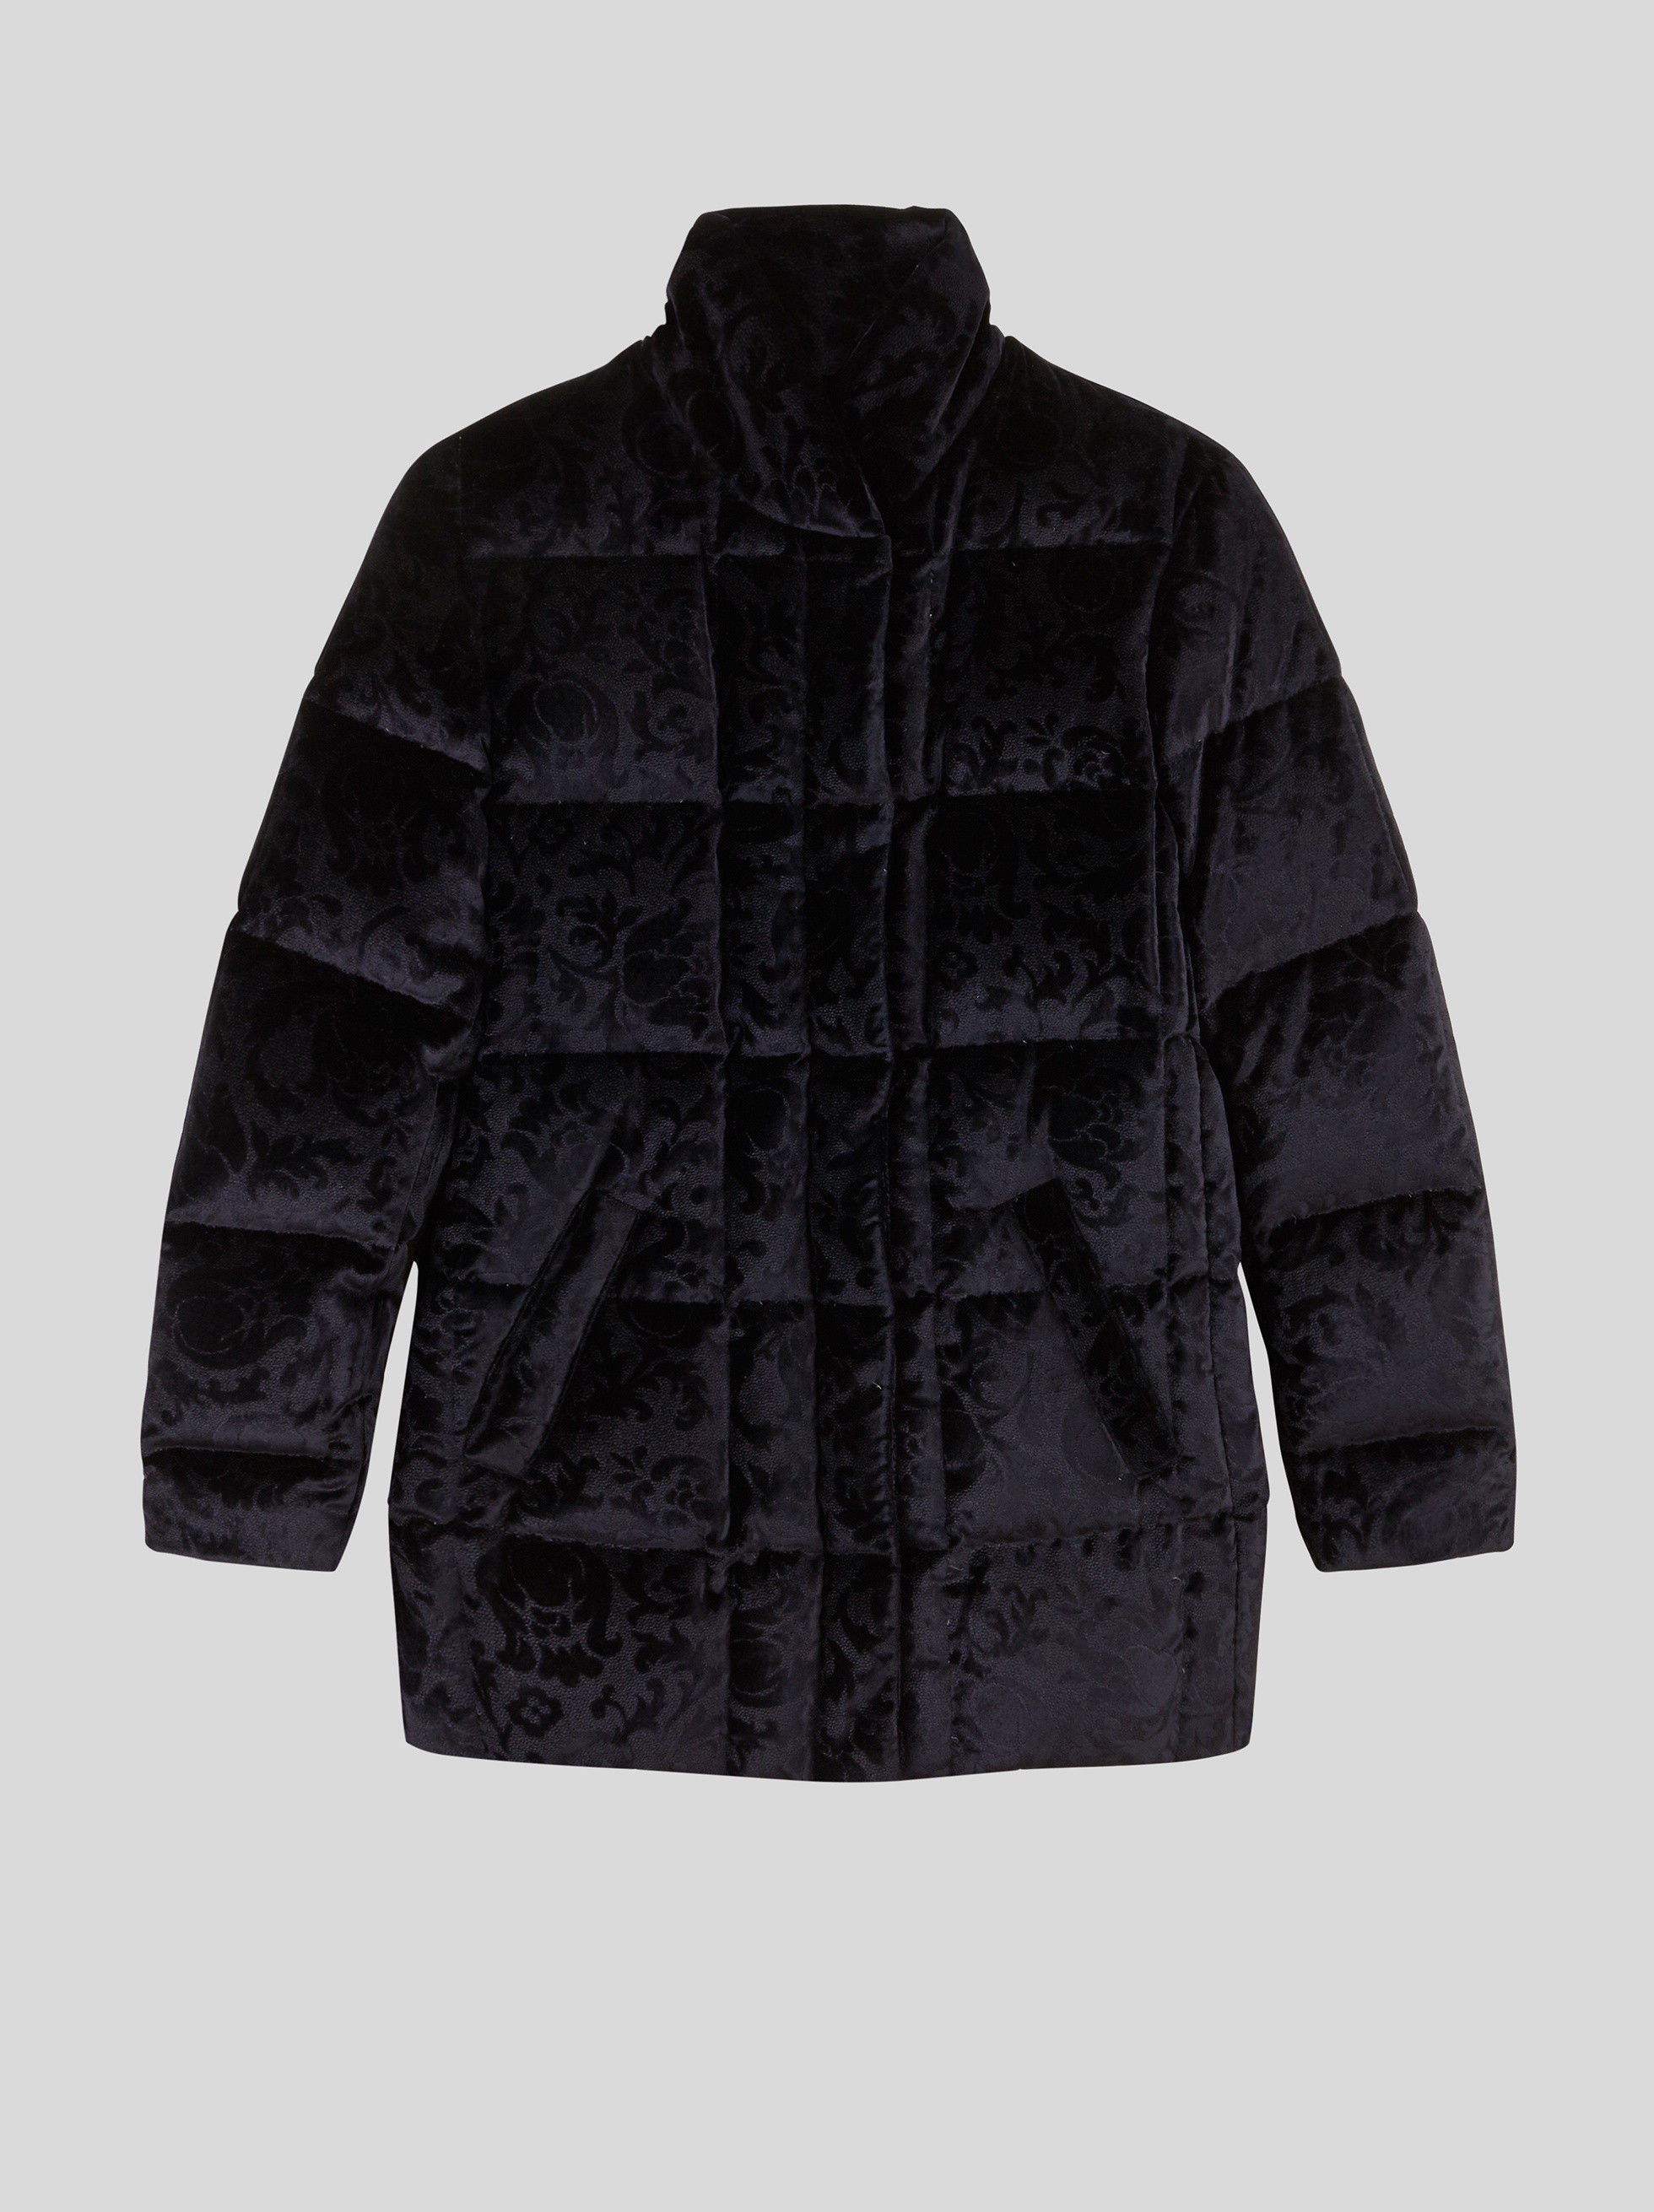 PAISLEY PATTERN VELVET DOWN JACKET